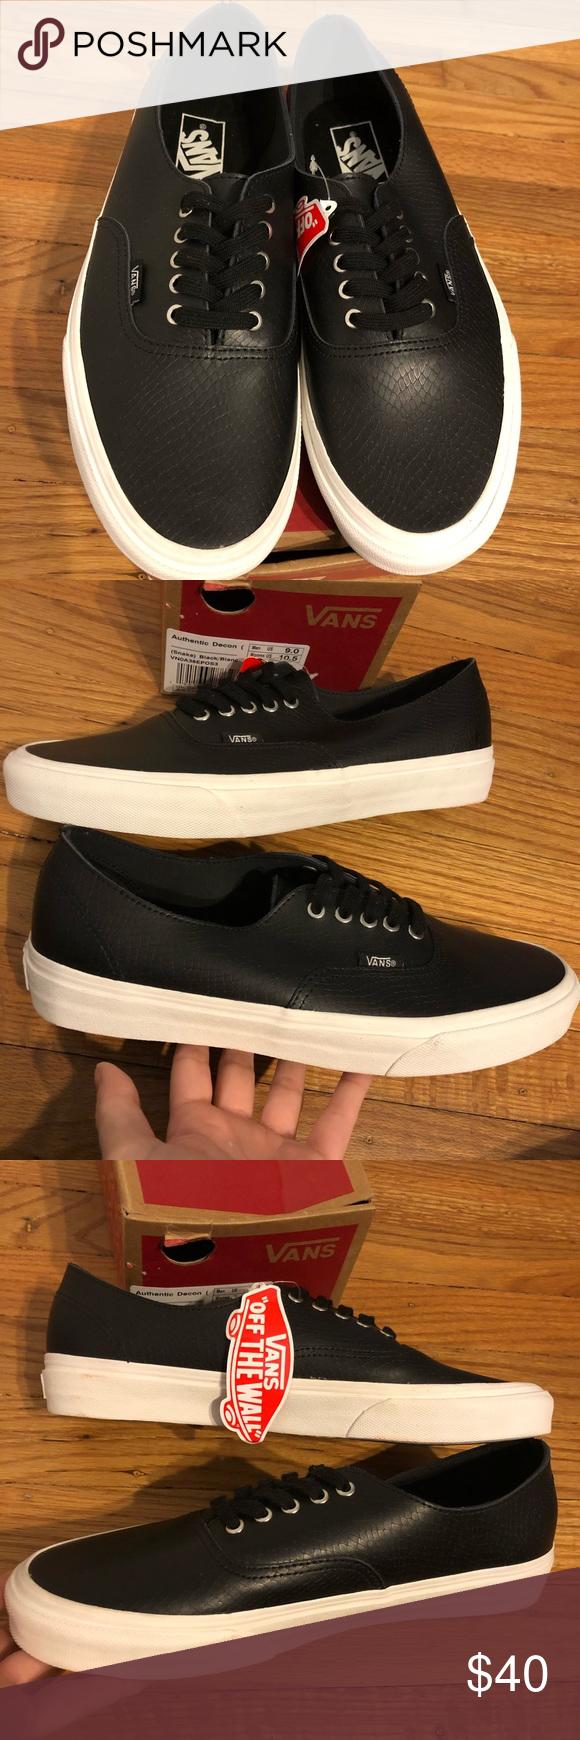 00692fbf0b NewinBox Vans Authentic Snake Skin Leather Unisex New in Box! 👀 Never  worn! 👀